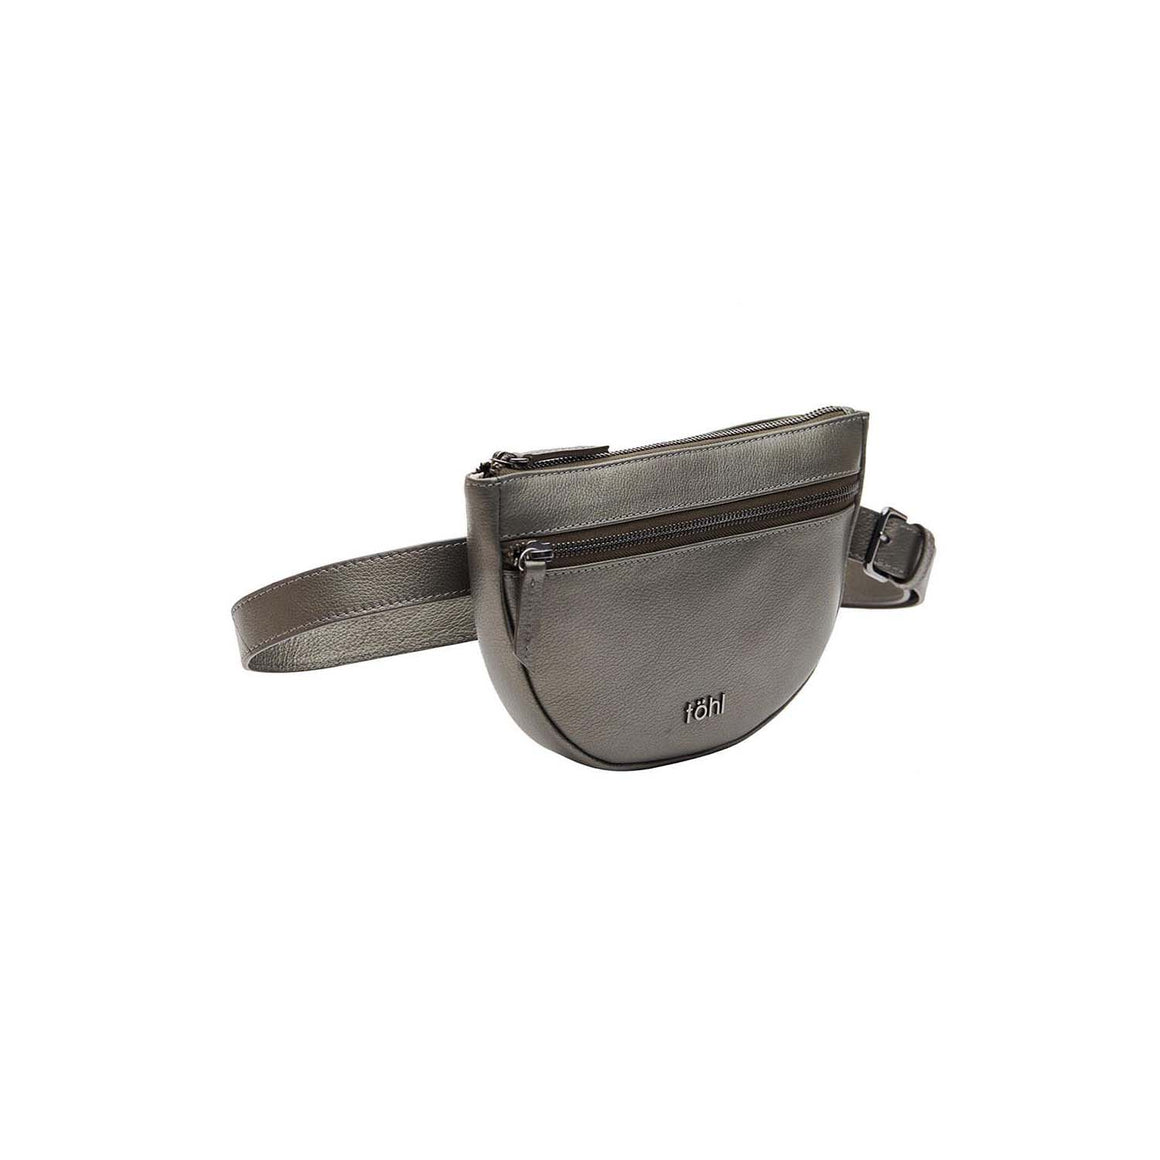 WP 0001 - TOHL RISELY WOMEN'S WAIST POUCH - METALLIC SMOKE